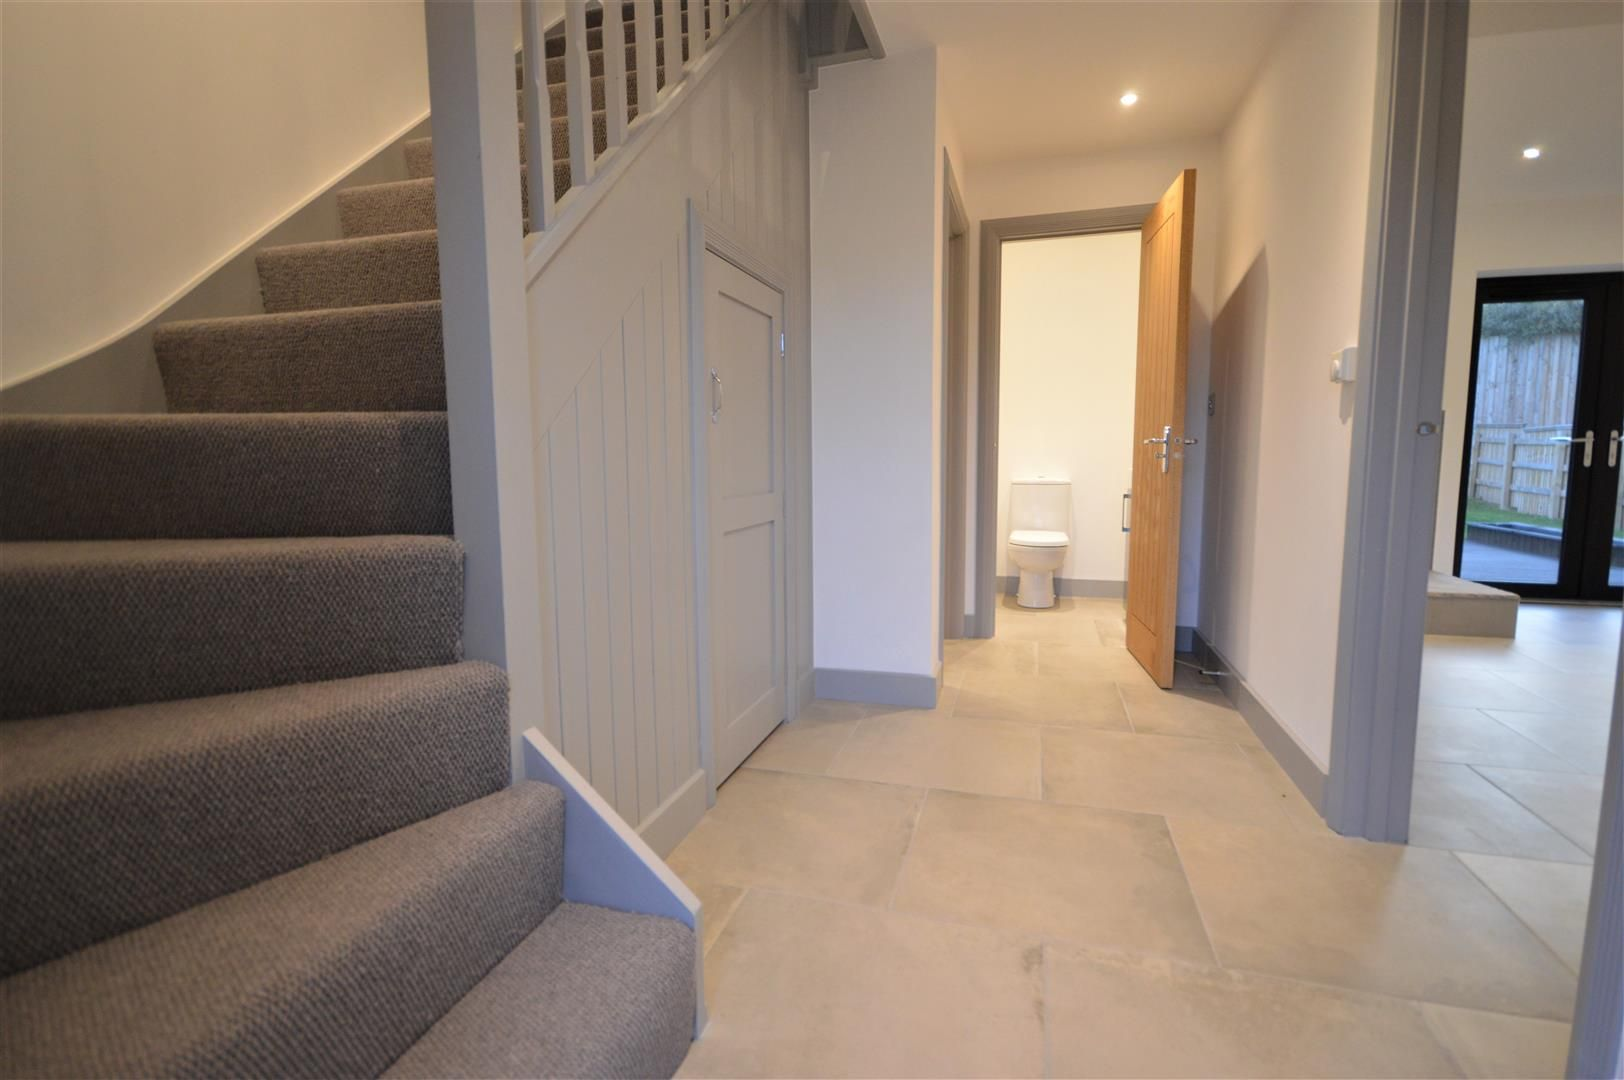 4 bed detached for sale in Brimfield  - Property Image 9